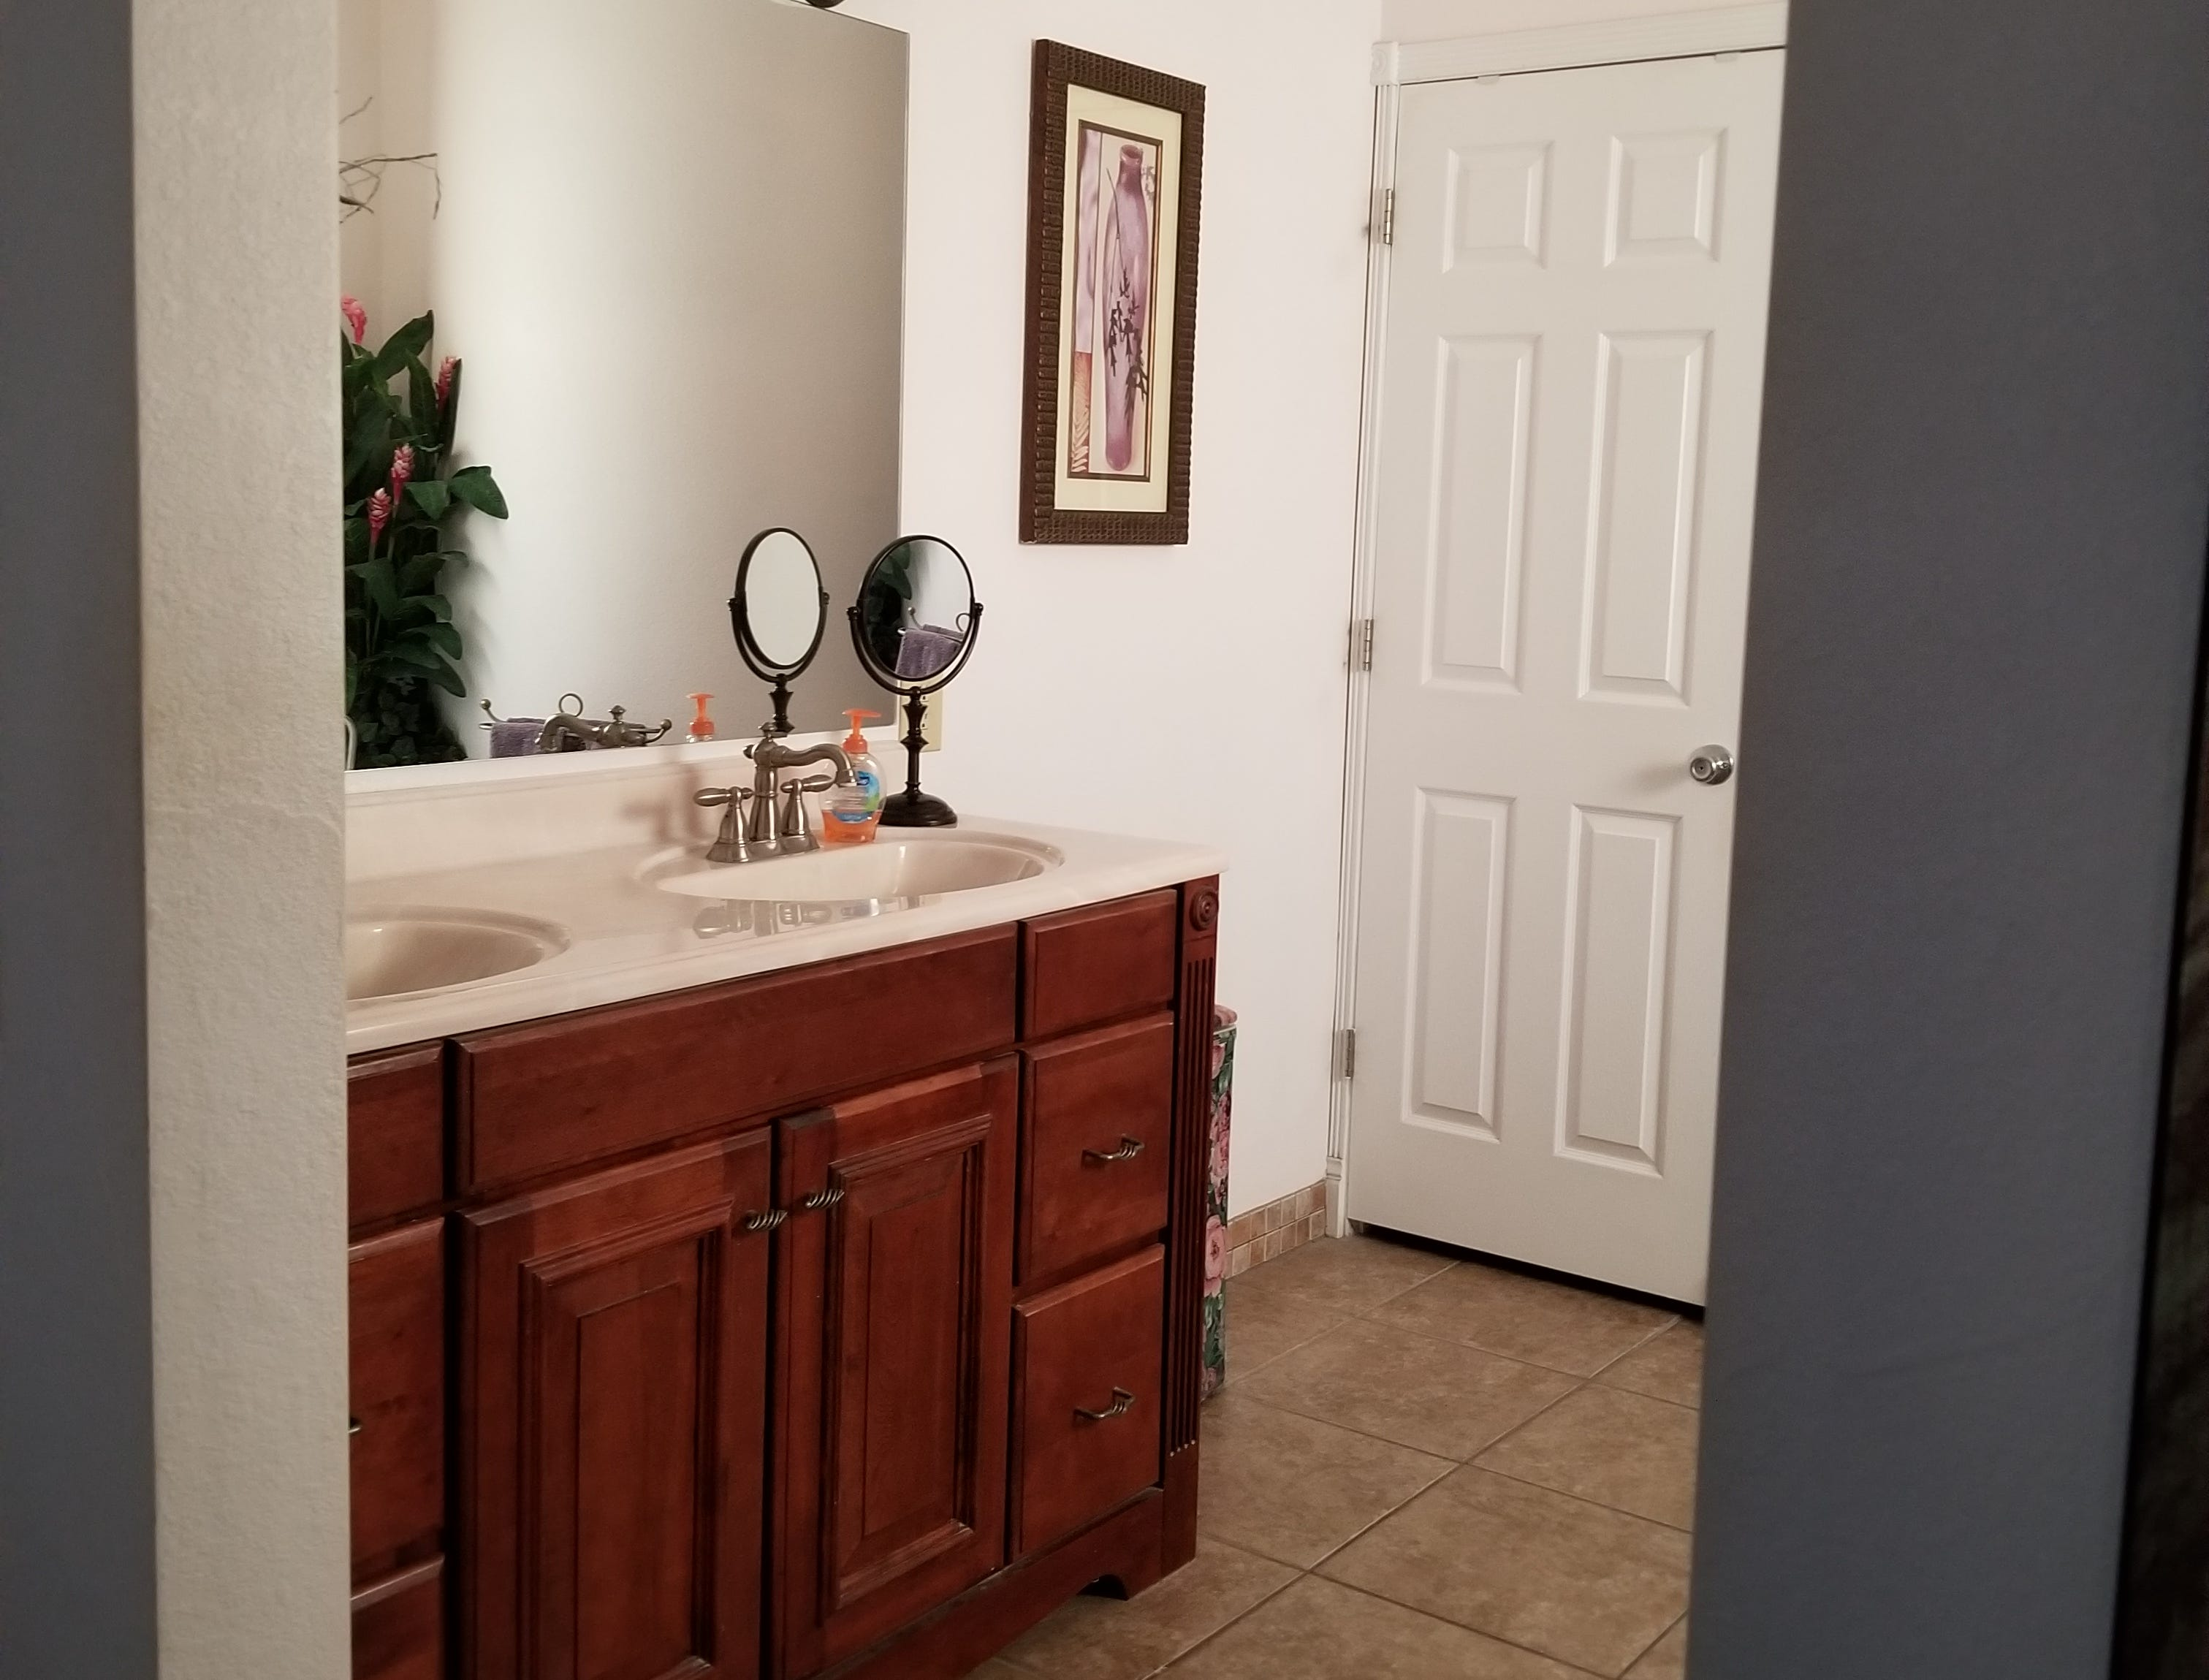 The bathroom in the master suite.